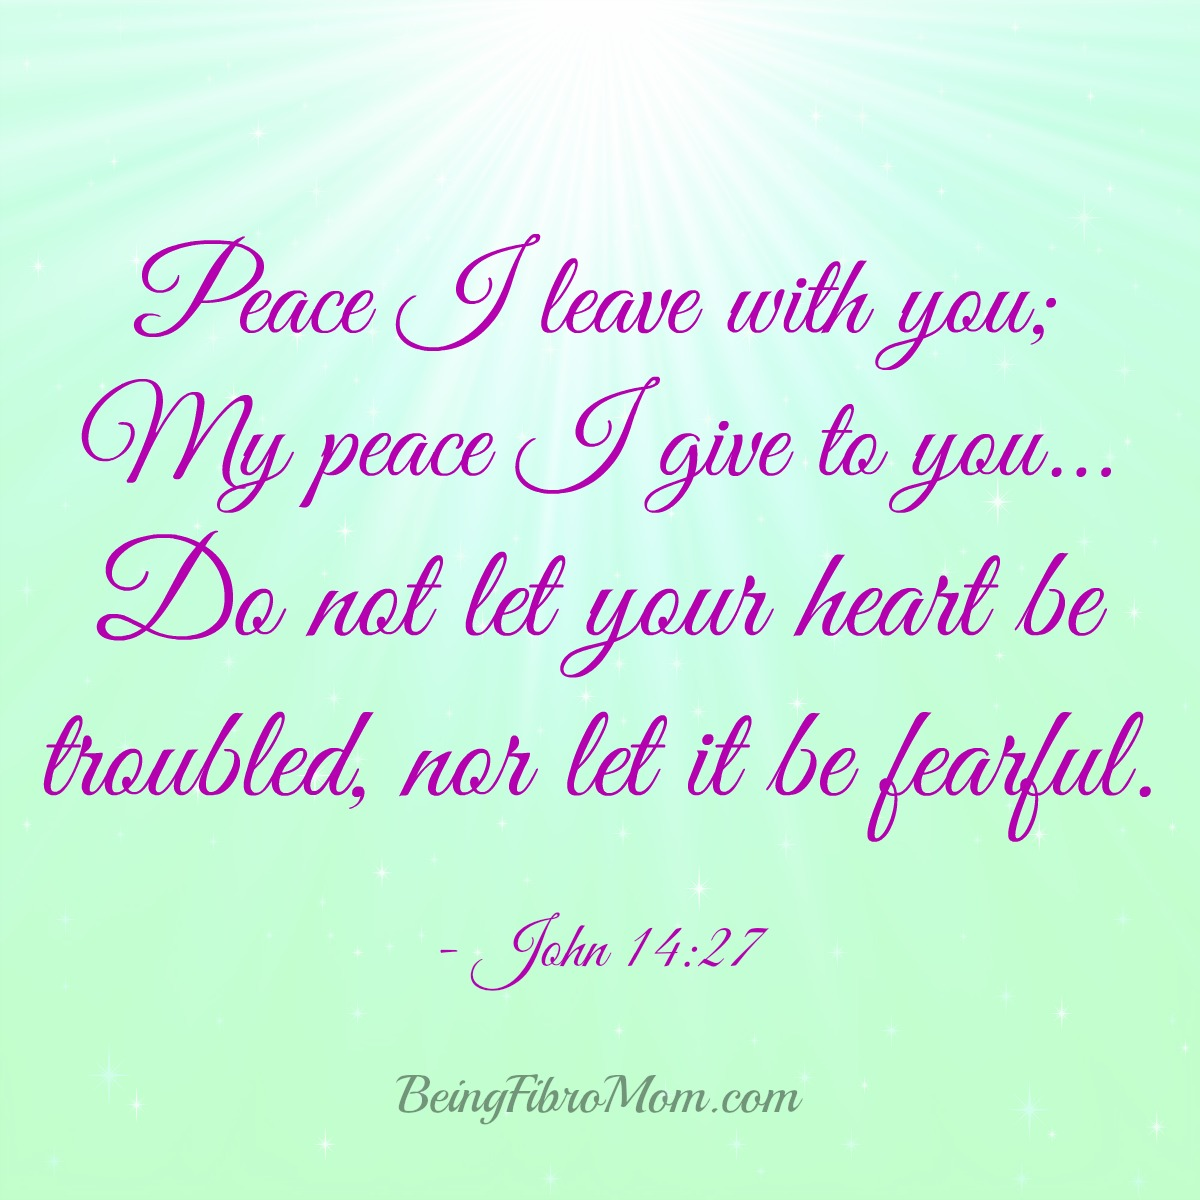 Peace I leave with you - John 14:27 #inspirational #Christian